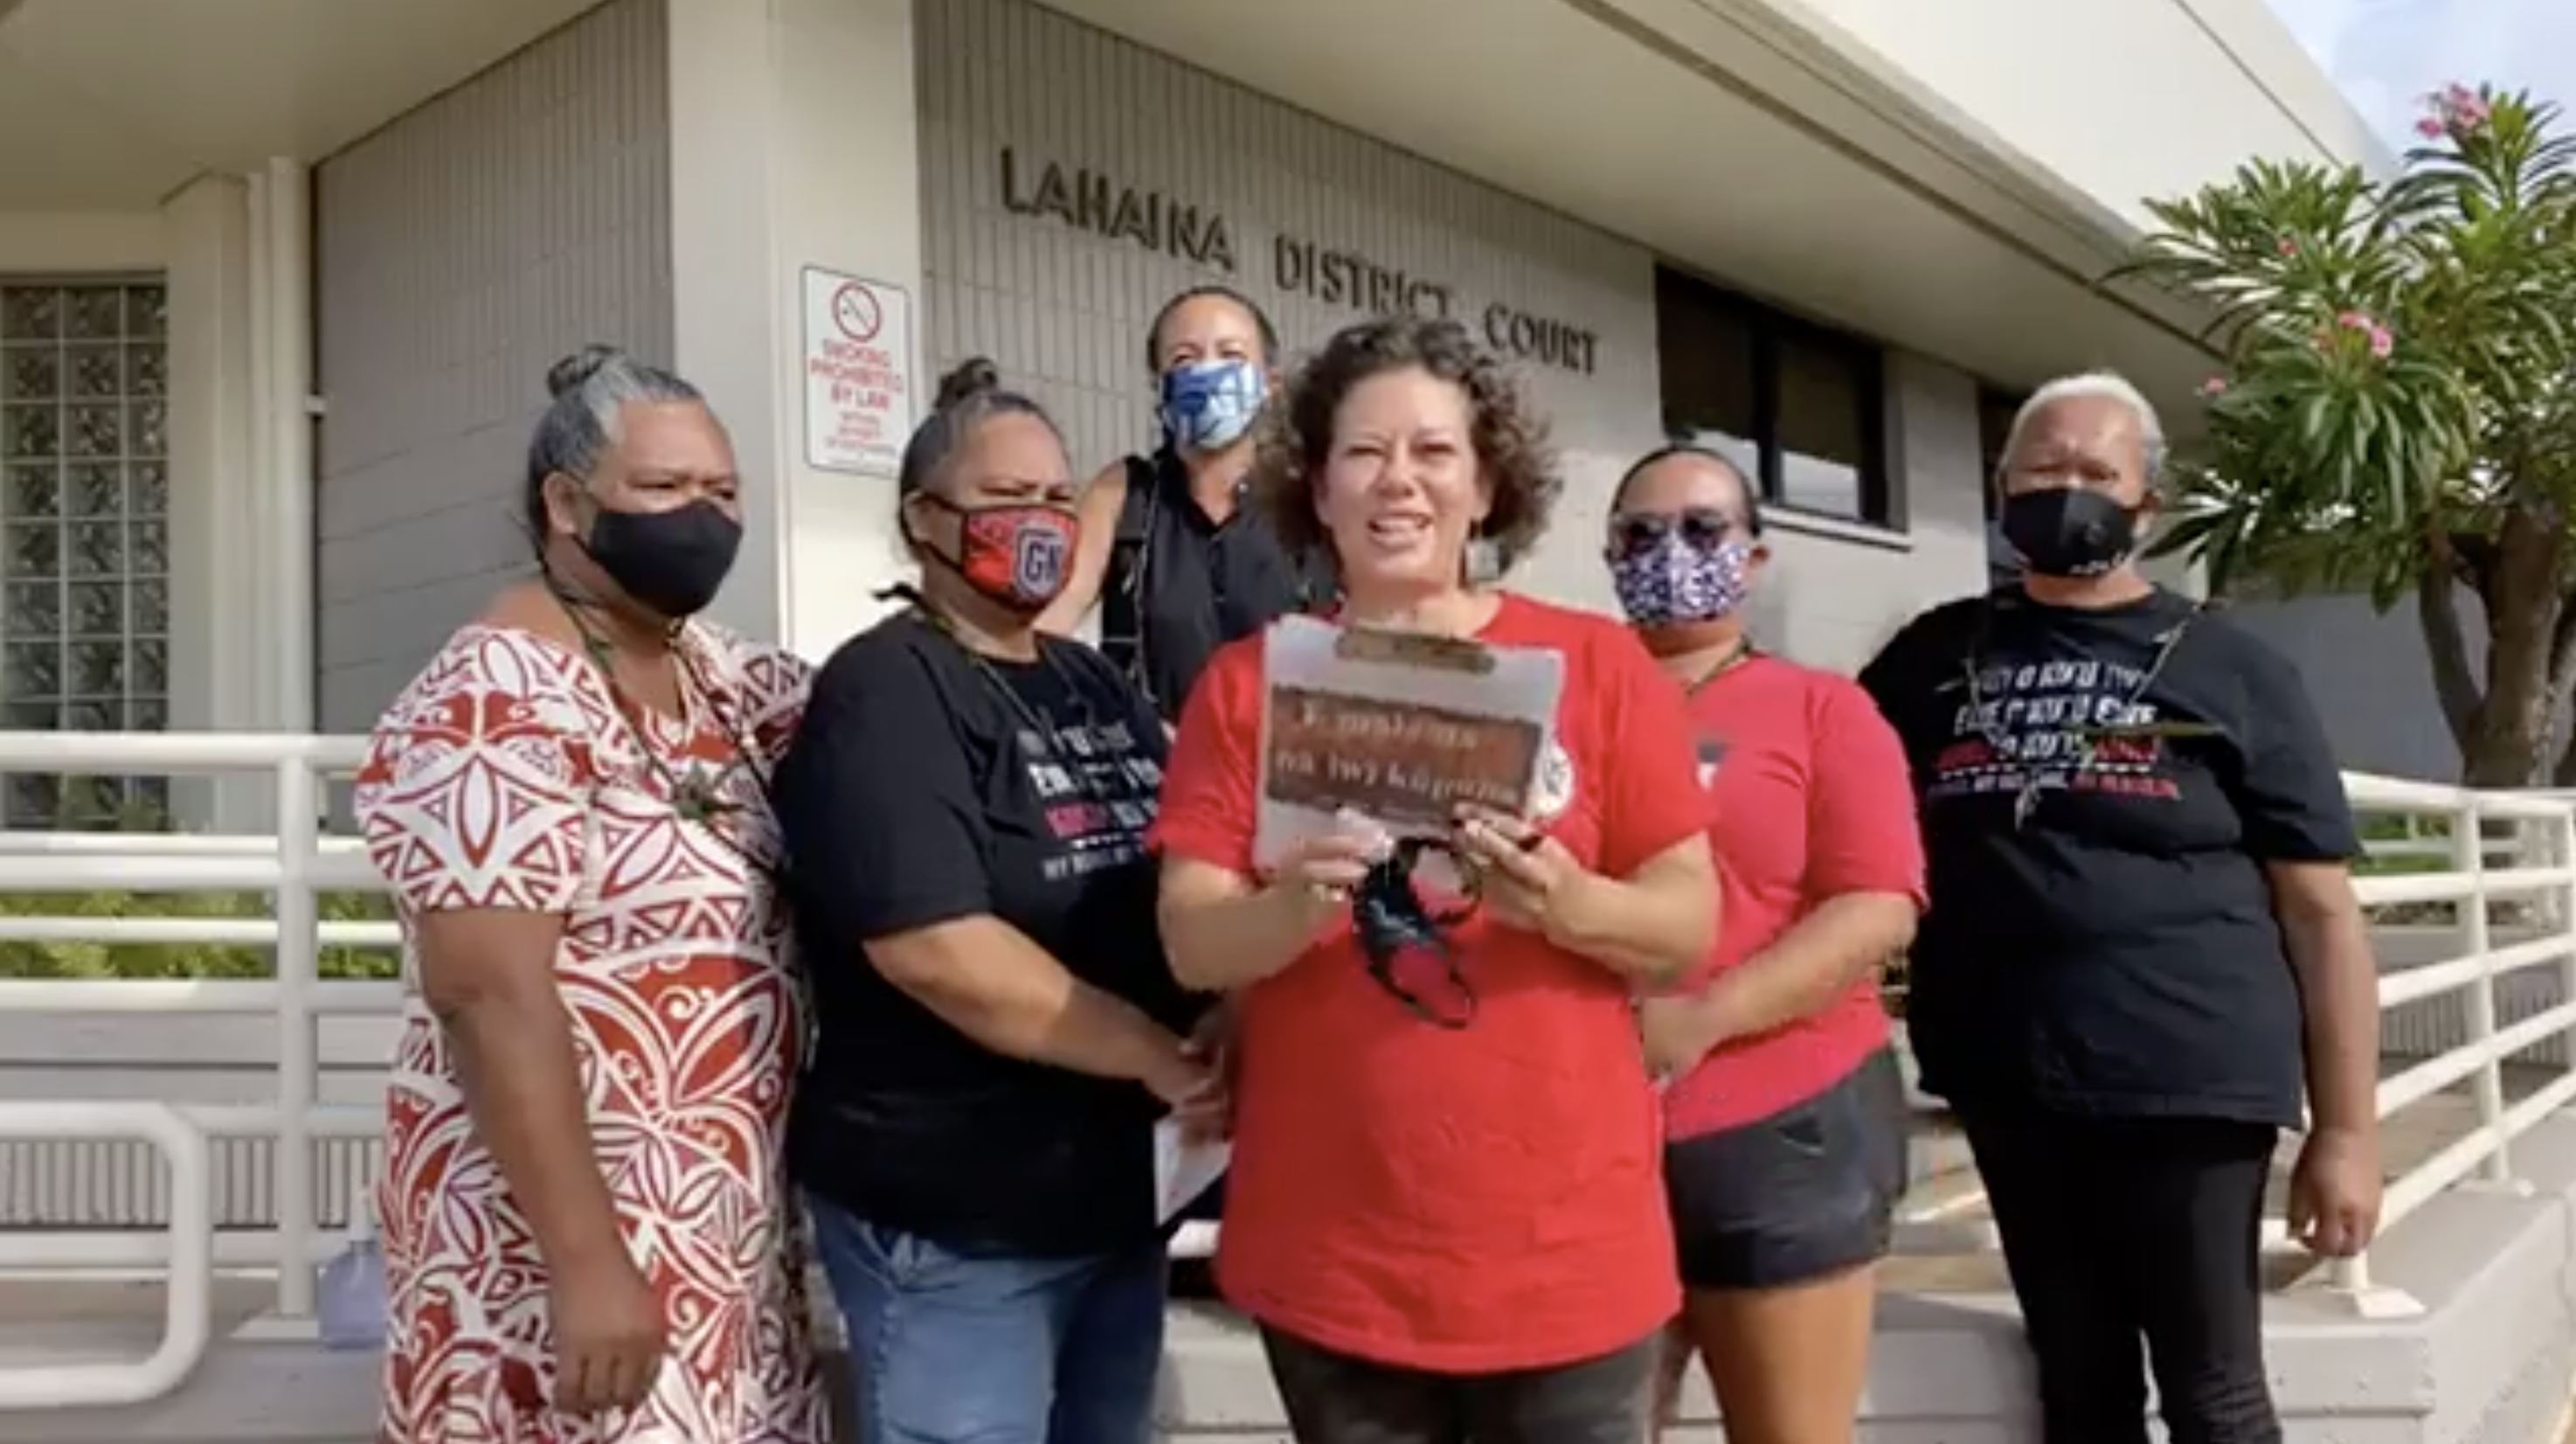 Charges Dropped Against Five Women Arrested in Demonstration at West Maui Site